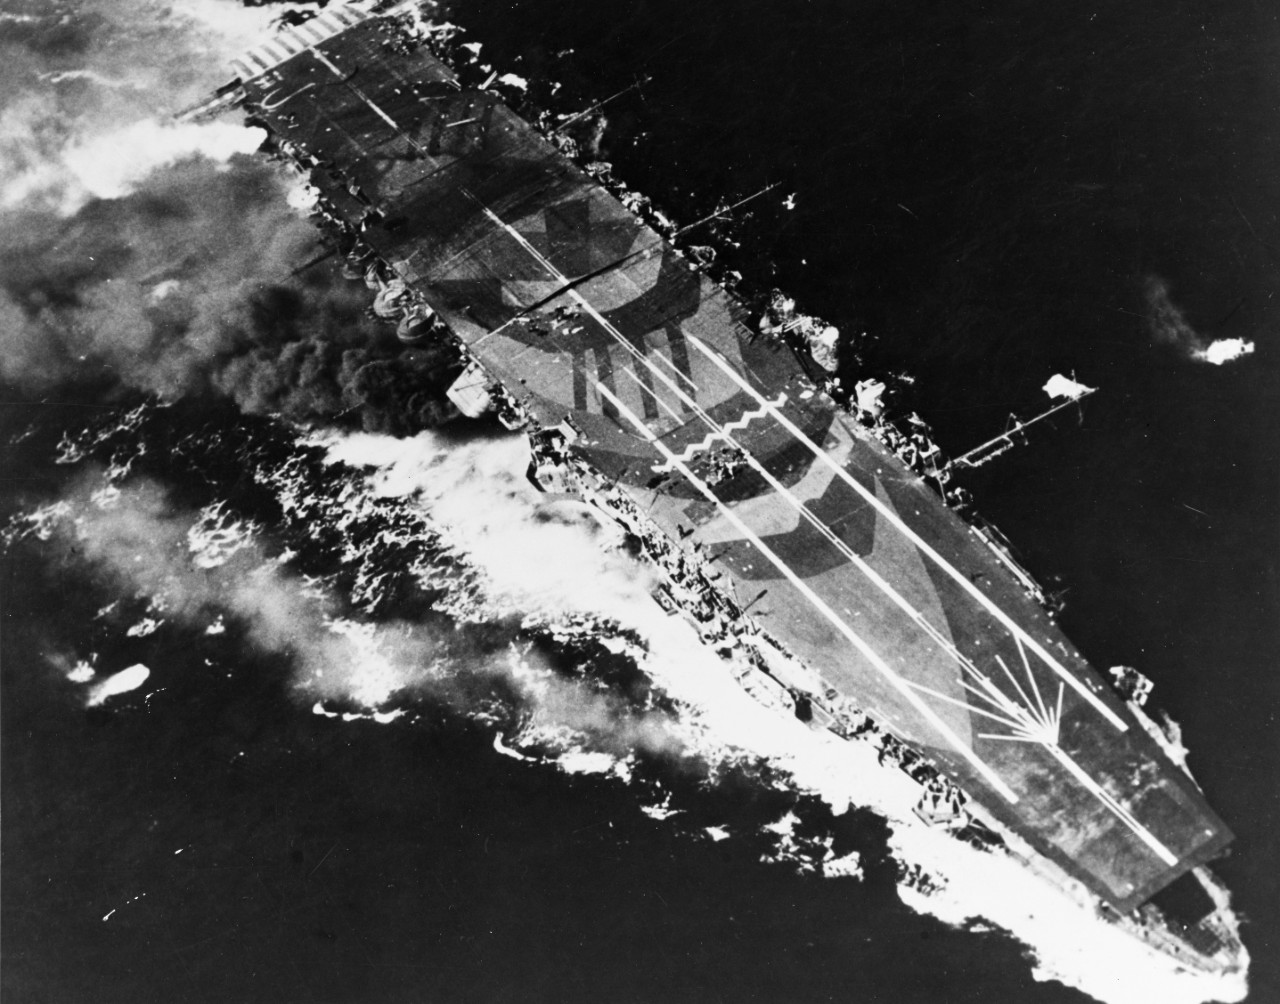 Japanese aircraft carrier Zuiho under attack by planes from USS Enterprise during the Battle off Cape Engano, 25 October 1944.